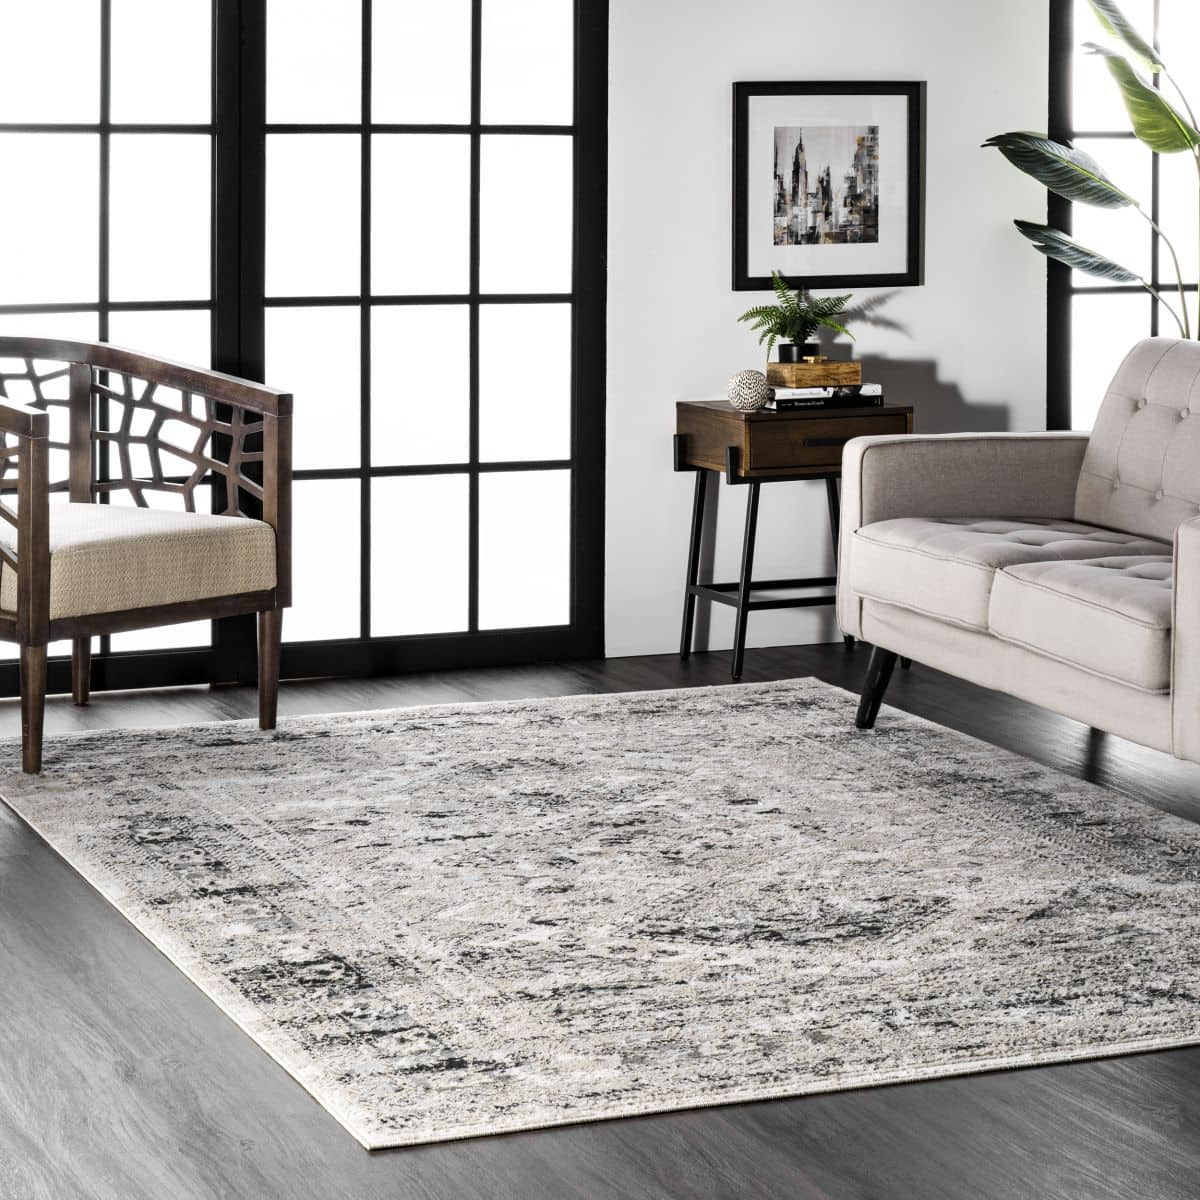 Silver Grey Rug With Dark Wood Floors for a Masculine Feel